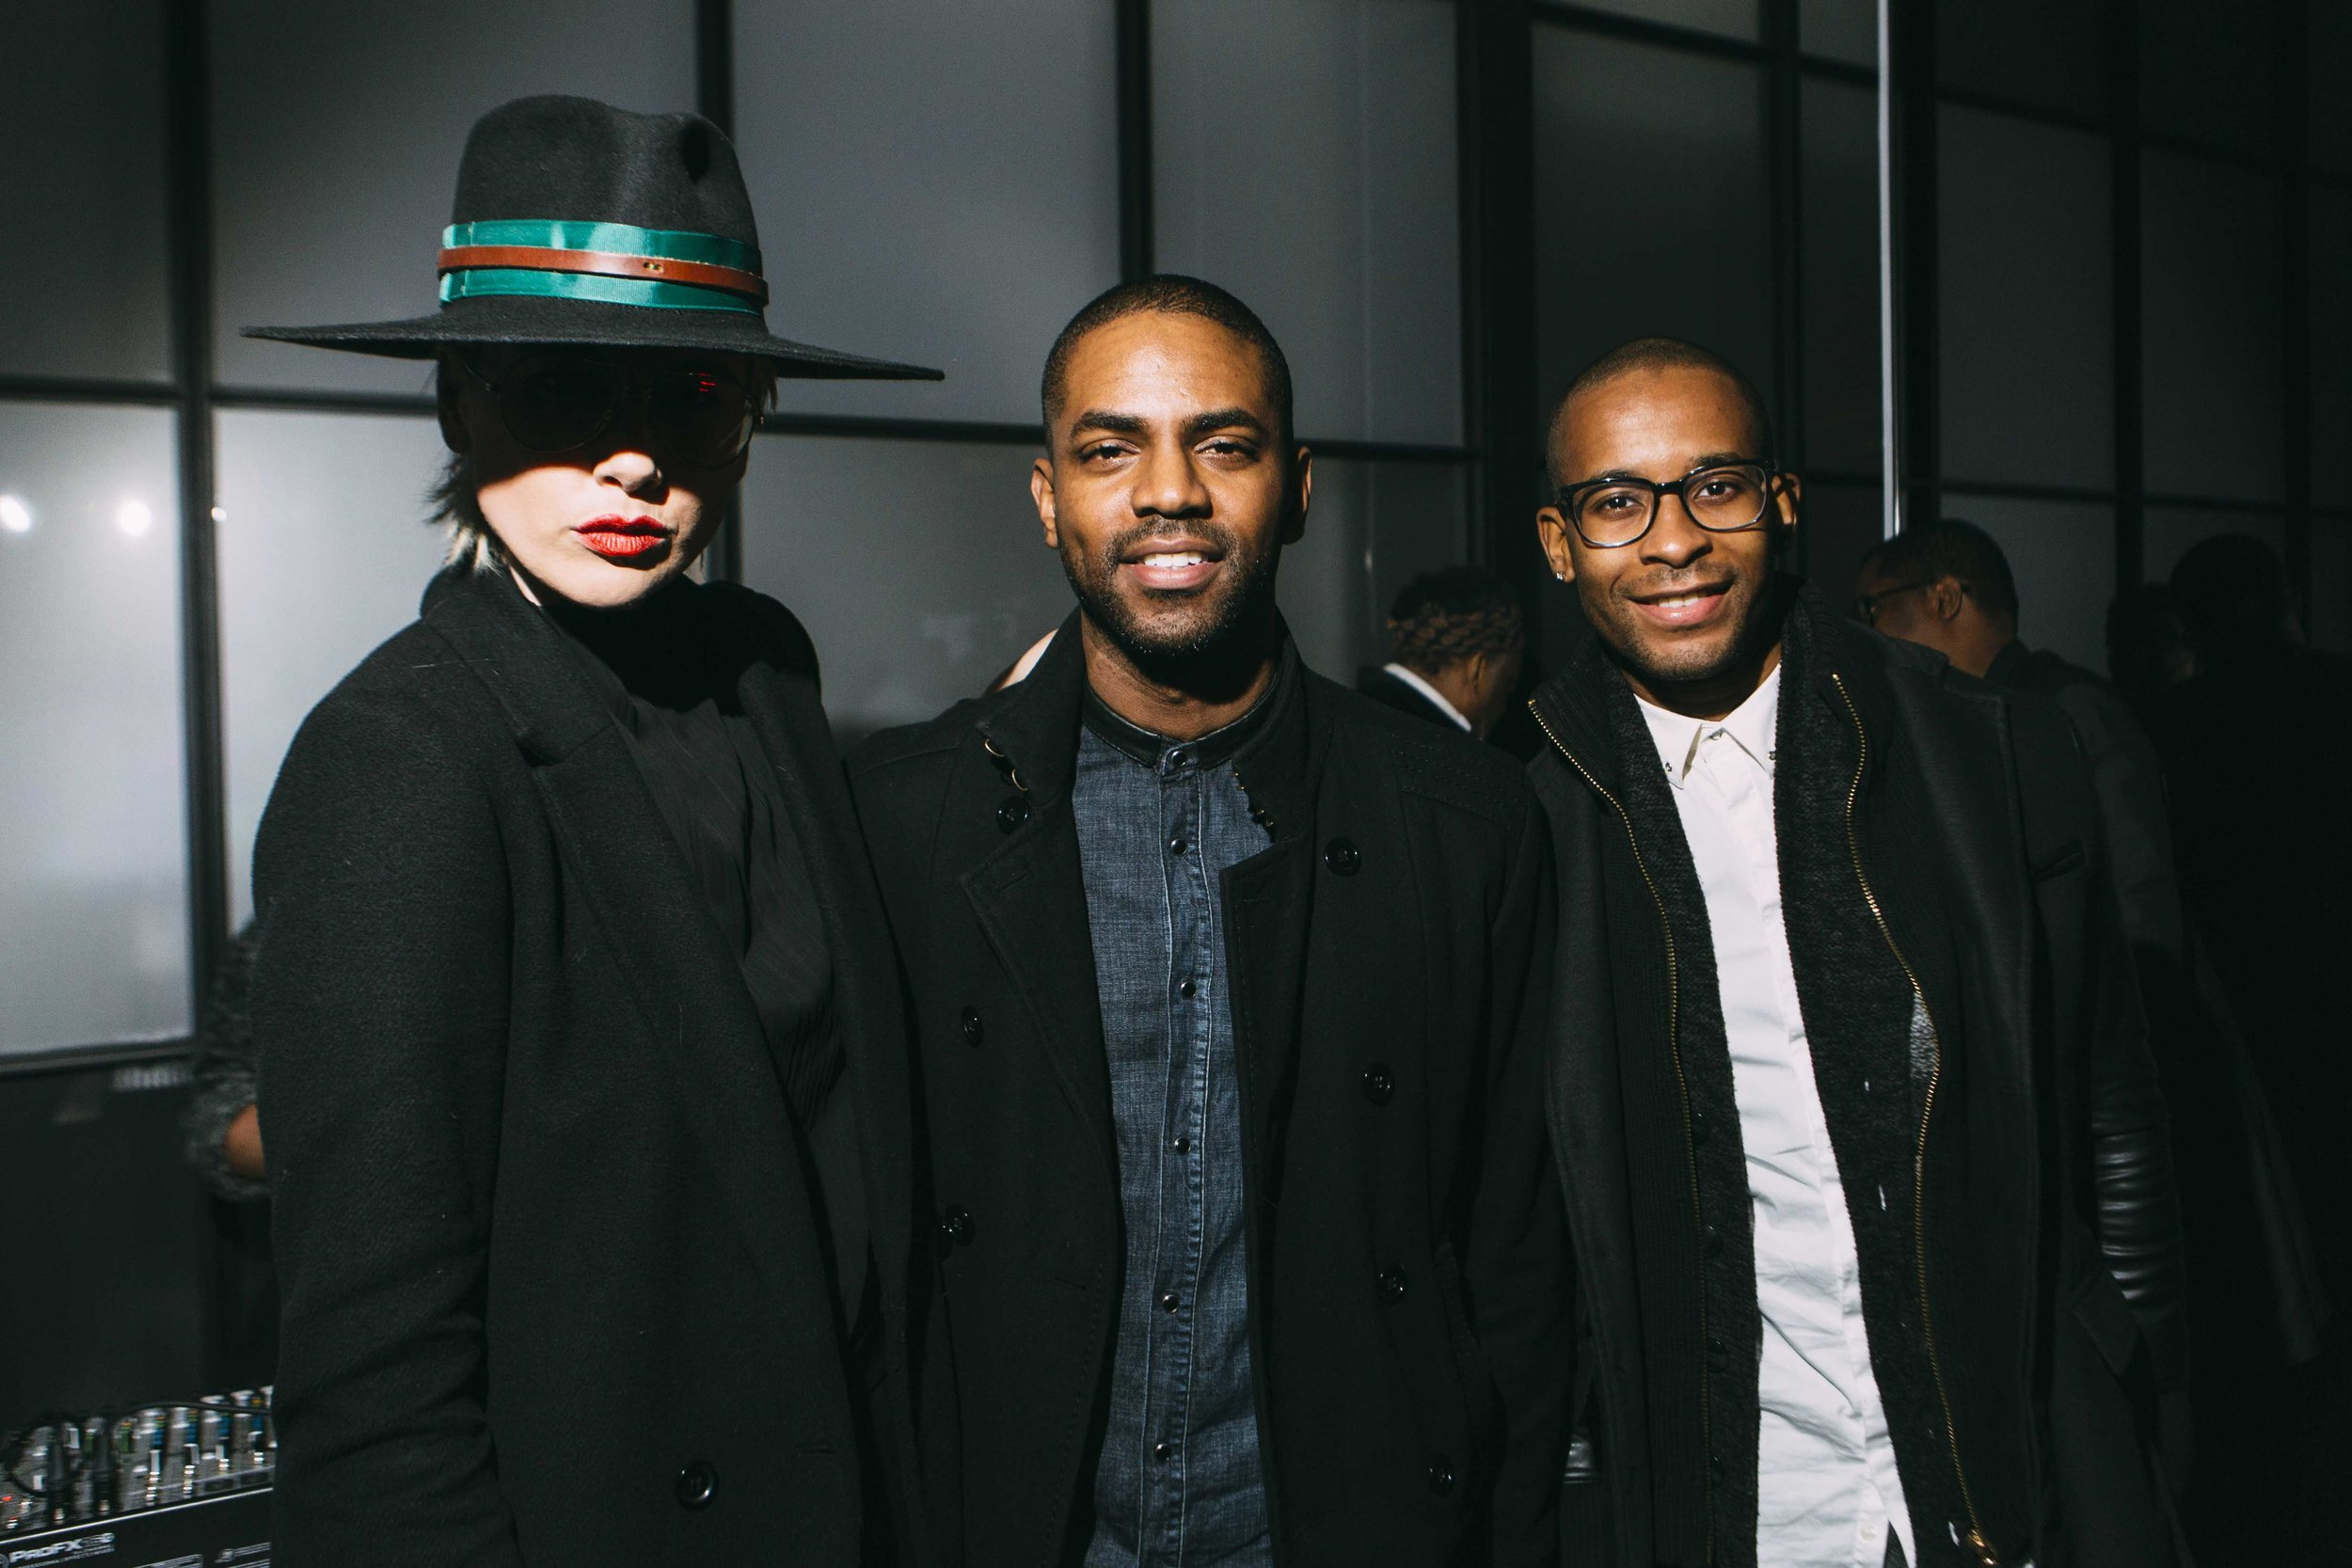 2018_11_27_OUT_Magazine_Men of Style_Event_Credit Emil Cohen_163.JPG